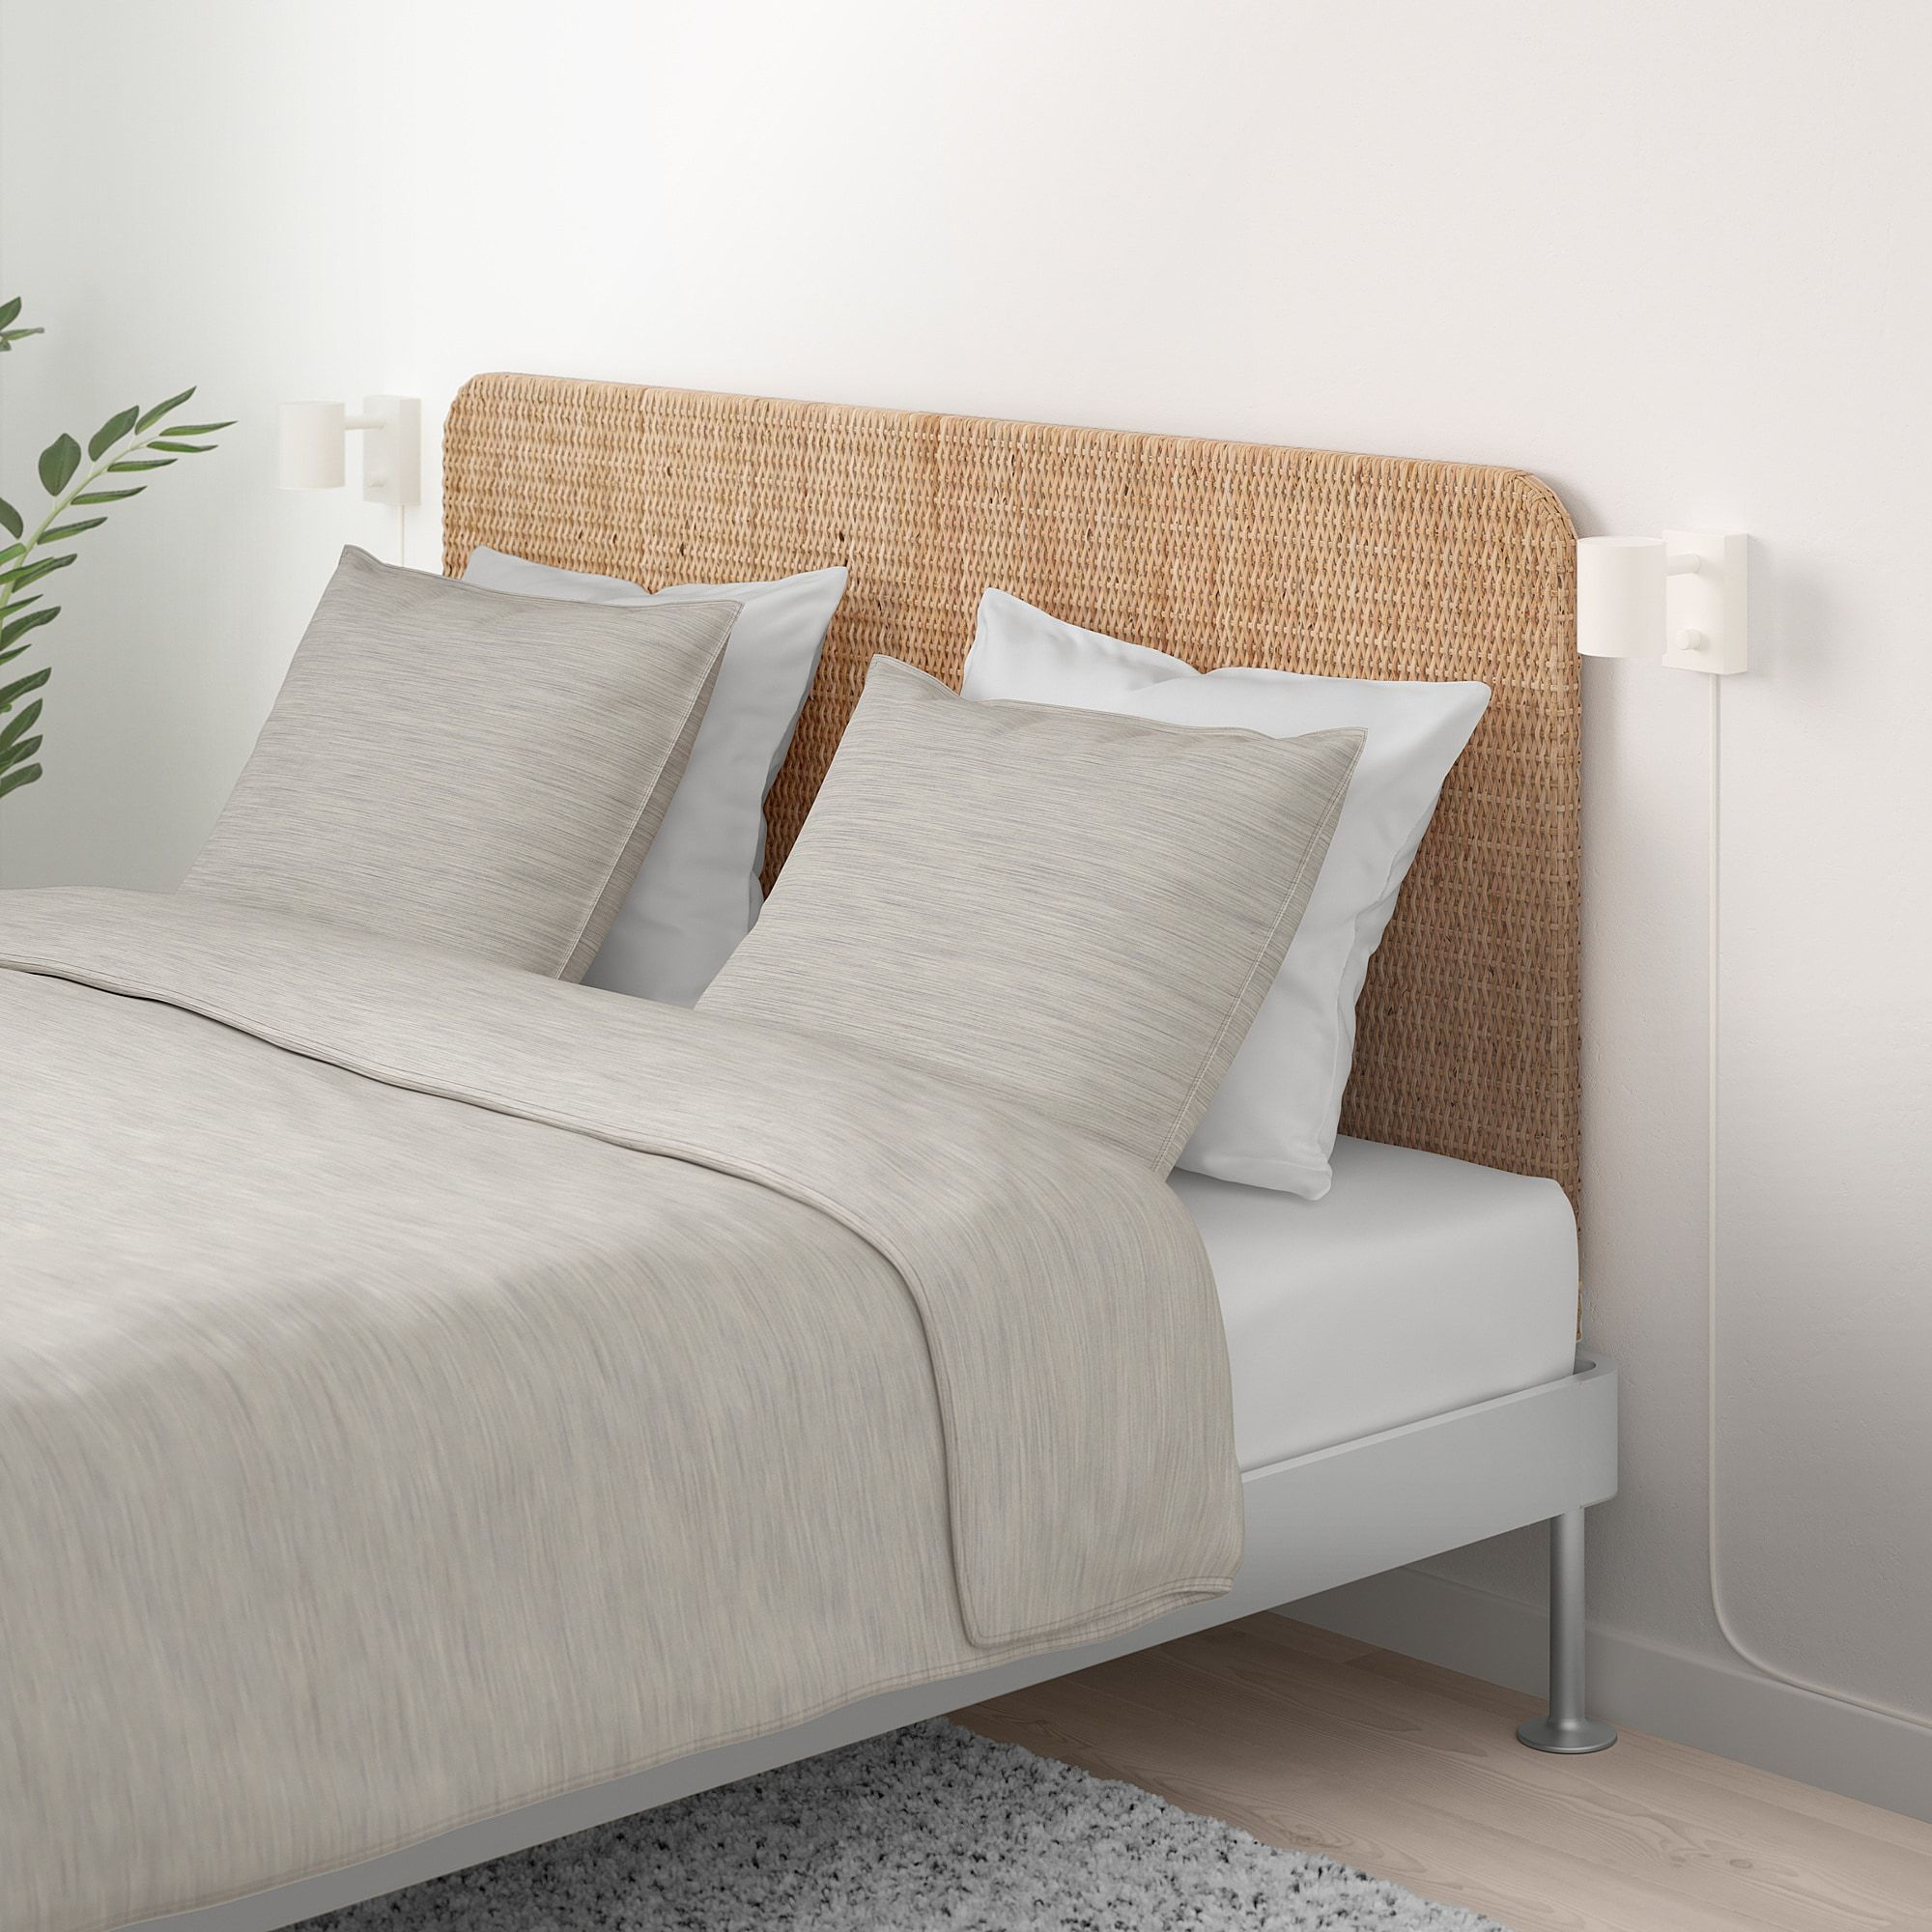 Delaktig Bed Frame With Headboard Aluminum Rattan Queen Bed